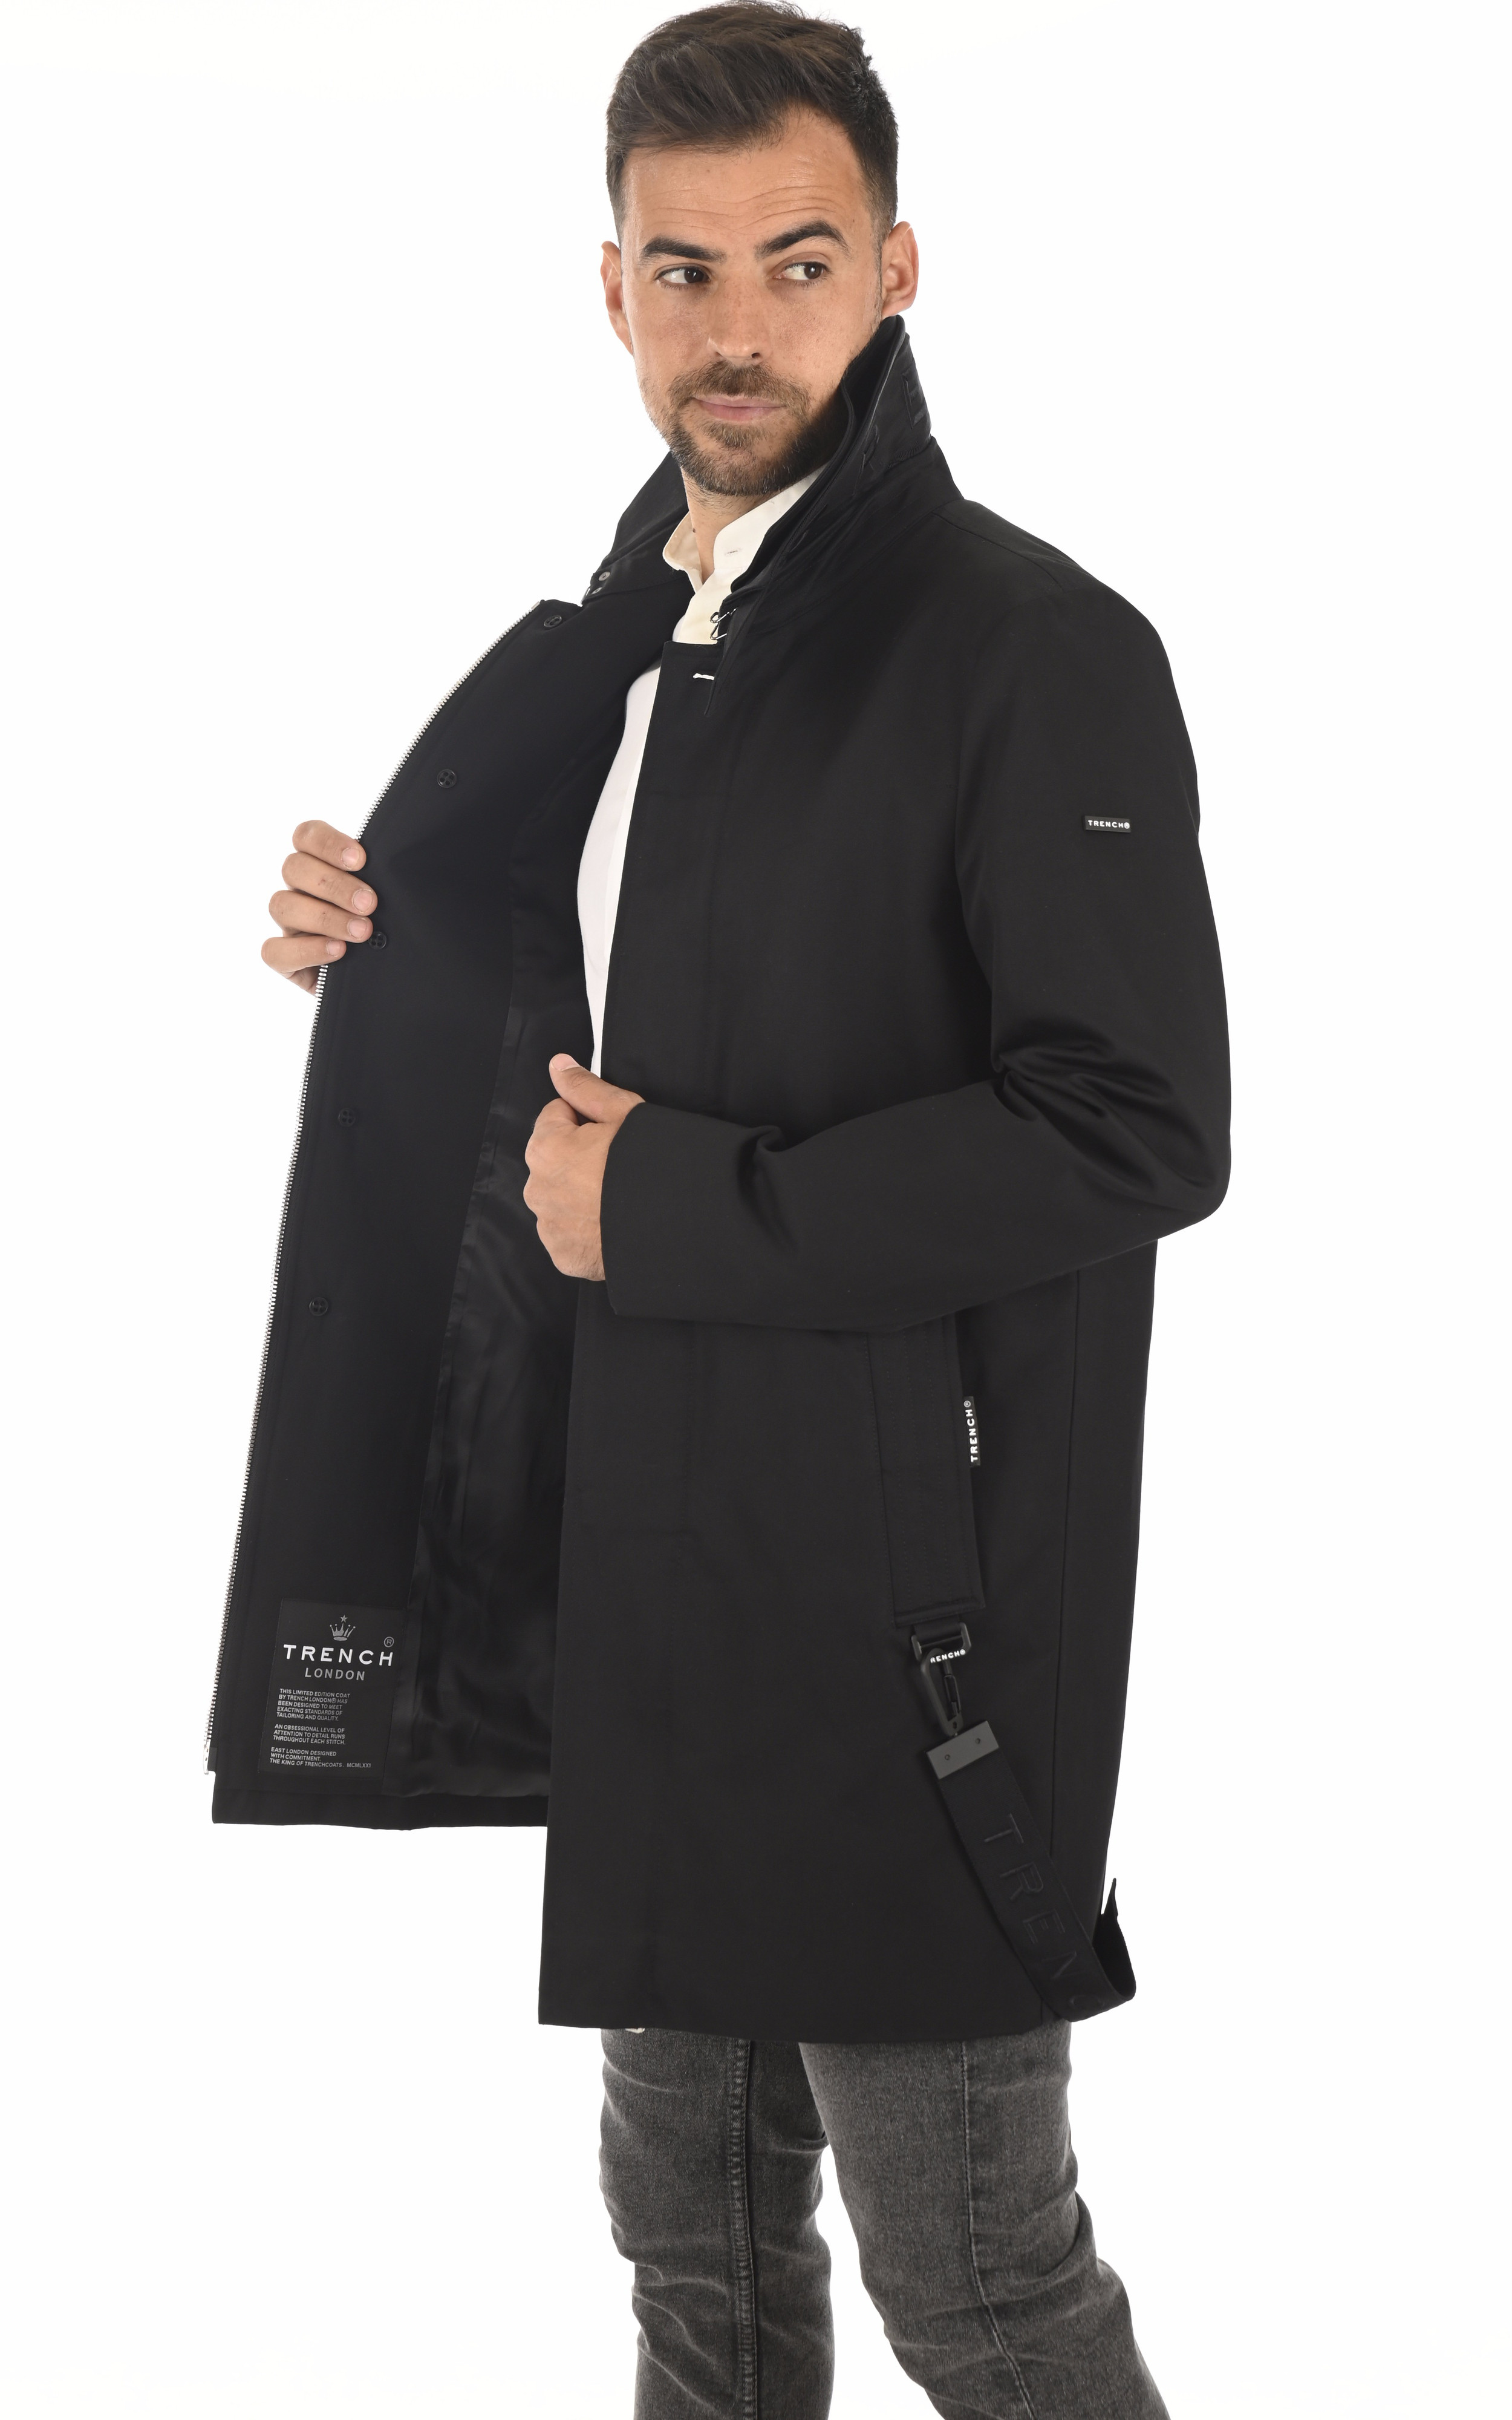 Trench Knight Coat noir Trench London